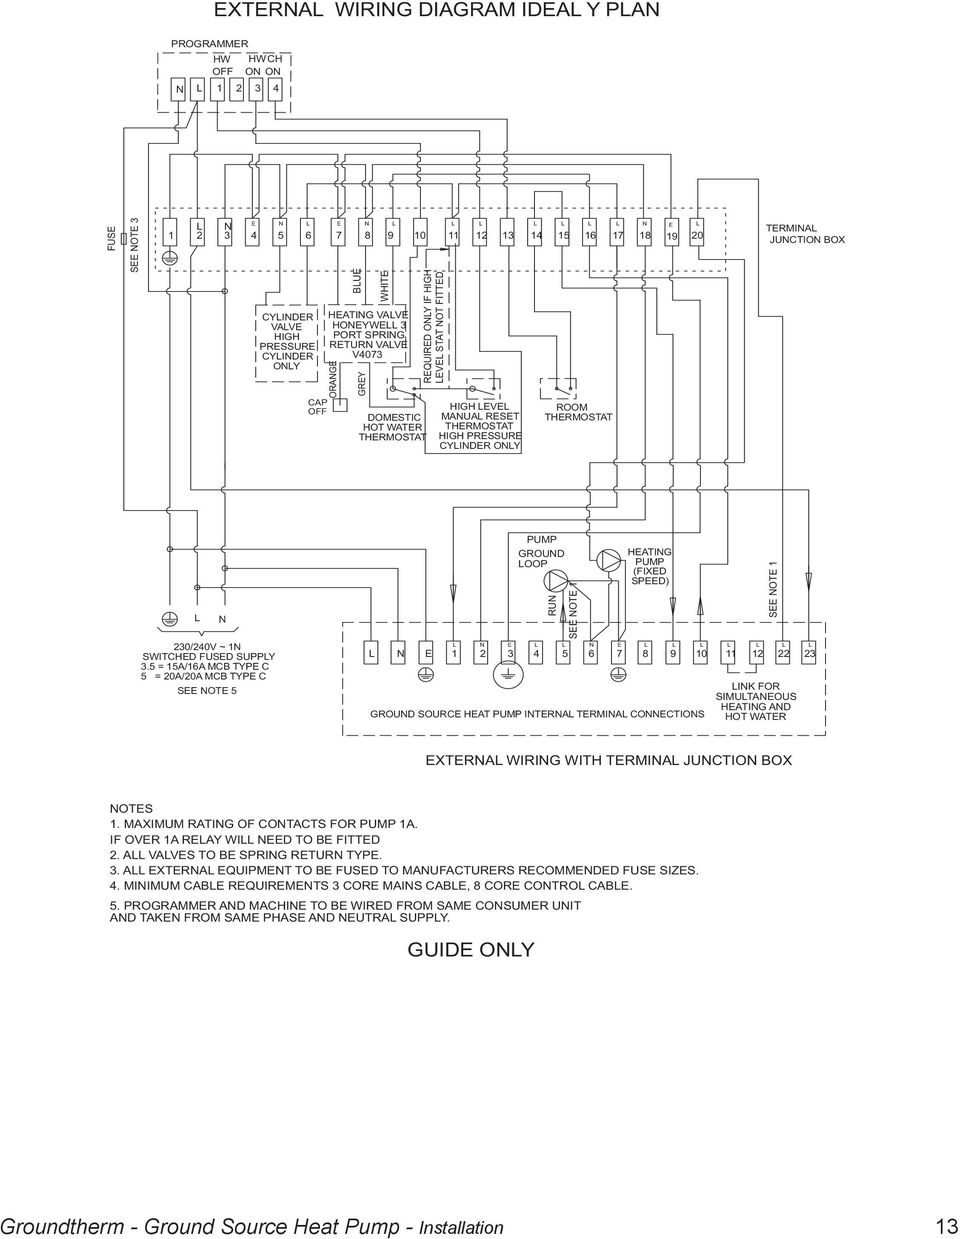 INSTALLATION AND OPERATING - PDF Free Download on heat pump components diagram, air-handler wiring diagram, air conditioning heat pump diagram, heat pump installation, ac wiring diagram, heater wiring diagram, electricity wiring diagram, heat pump electrical wiring, heat pump process diagram, air conditioner wiring diagram, furnace wiring diagram, heat pump systems, heat pump troubleshooting, heat pump thermostat diagram, heat pump relay diagram, thermostat wiring diagram, heat pumps product, heat pump engine, compressor wiring diagram,